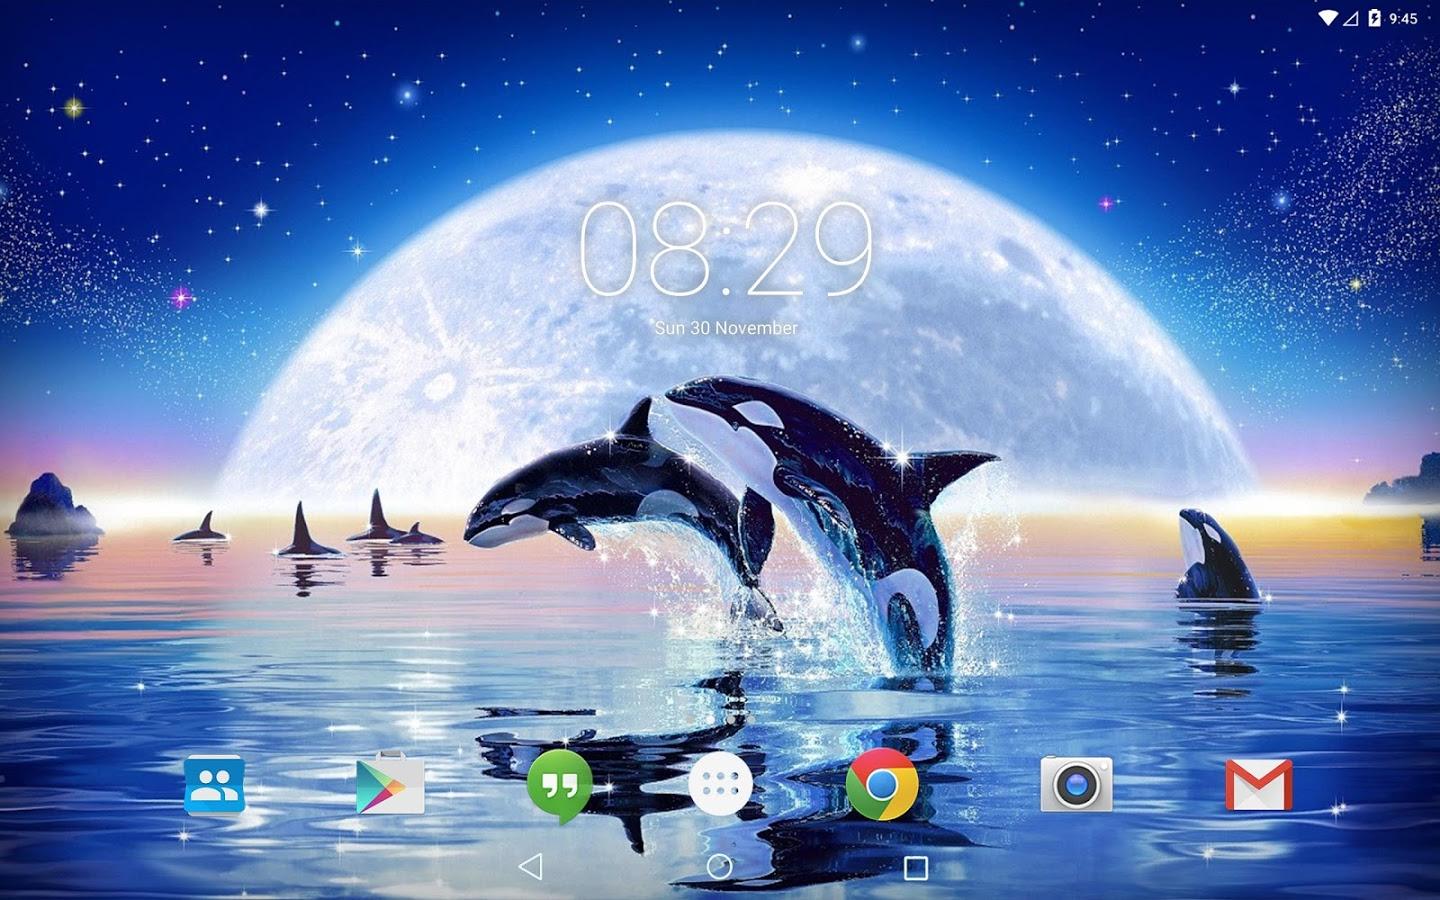 3d Cube Live Wallpaper Apk Ocean Dolphins Live Wallpaper 187 Apk Thing Android Apps